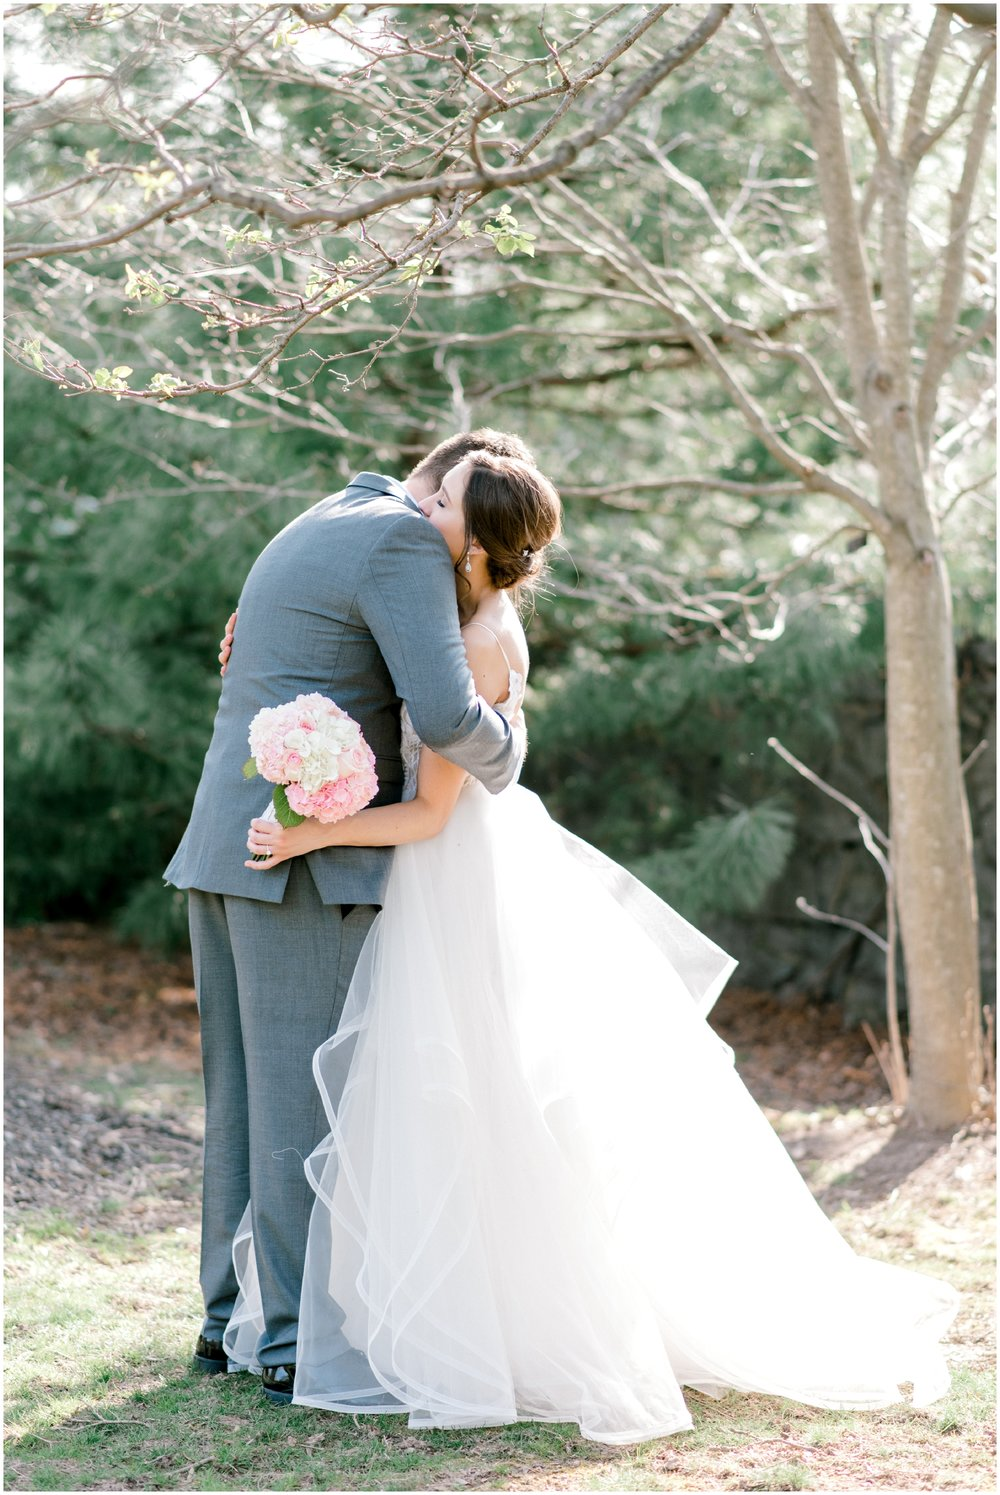 Sunny Spring Wedding at The Carriage House at Rockwood Park in Wilmington, DE- Krista Brackin Photography_0057.jpg